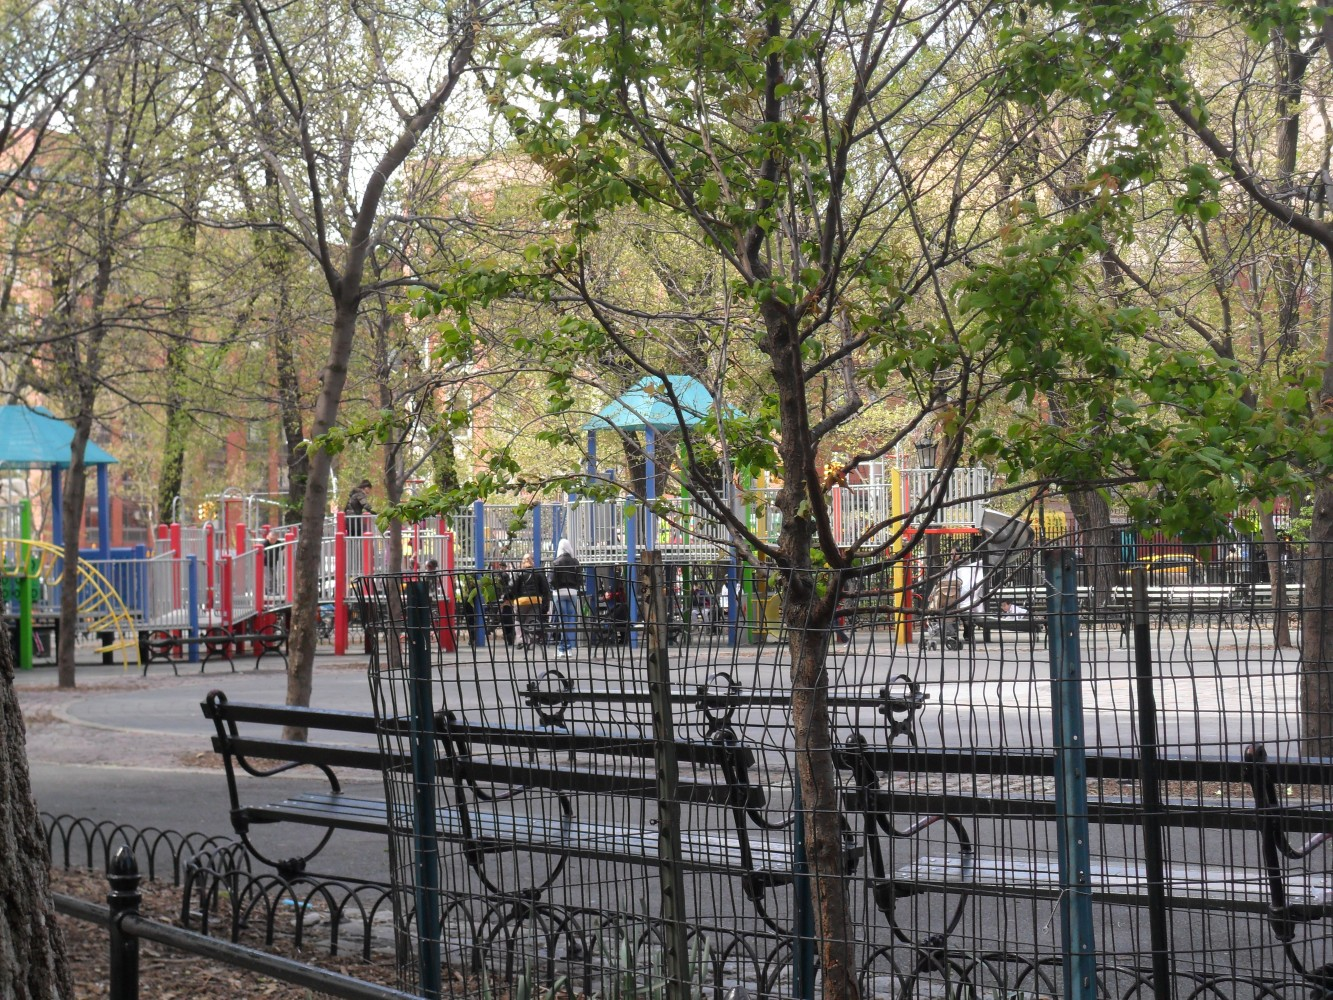 Everyone enjoys the playgrounds, benches and trees around the park!